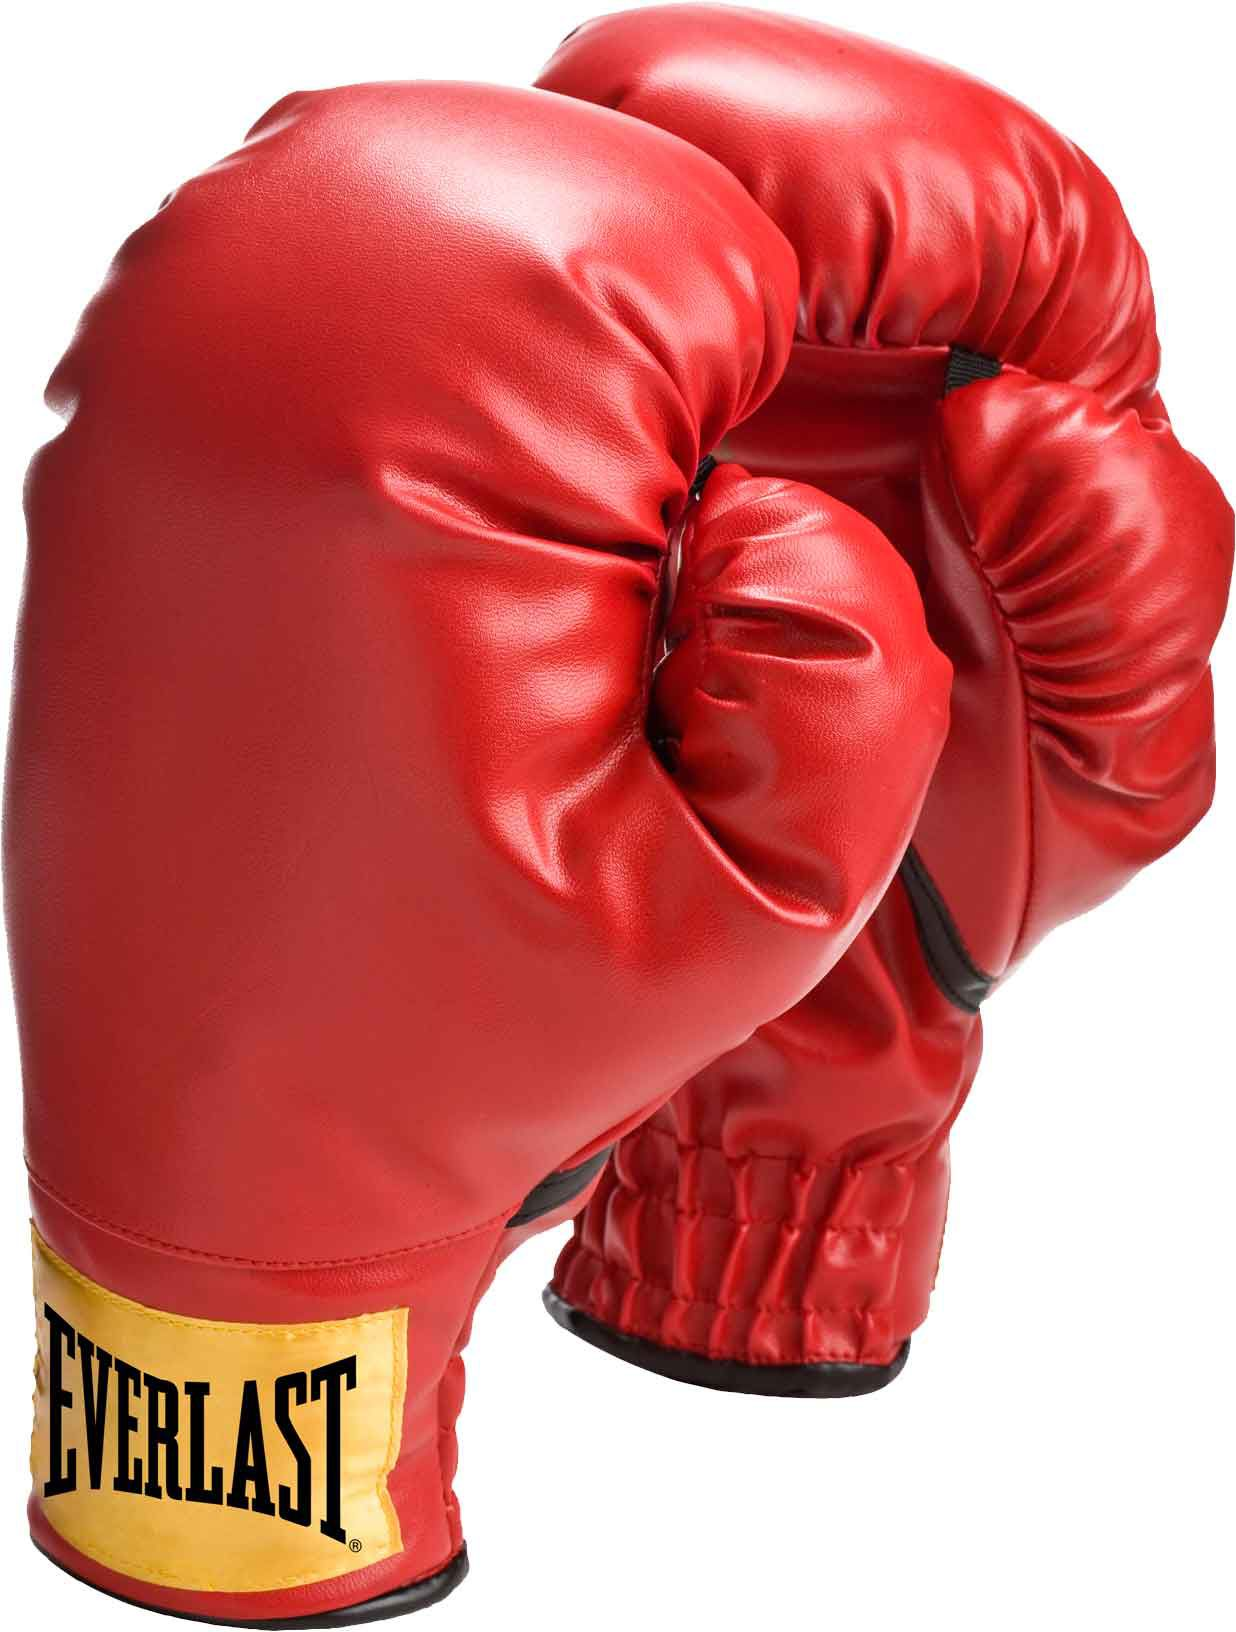 Choosing The Best Boxing Gloves For You